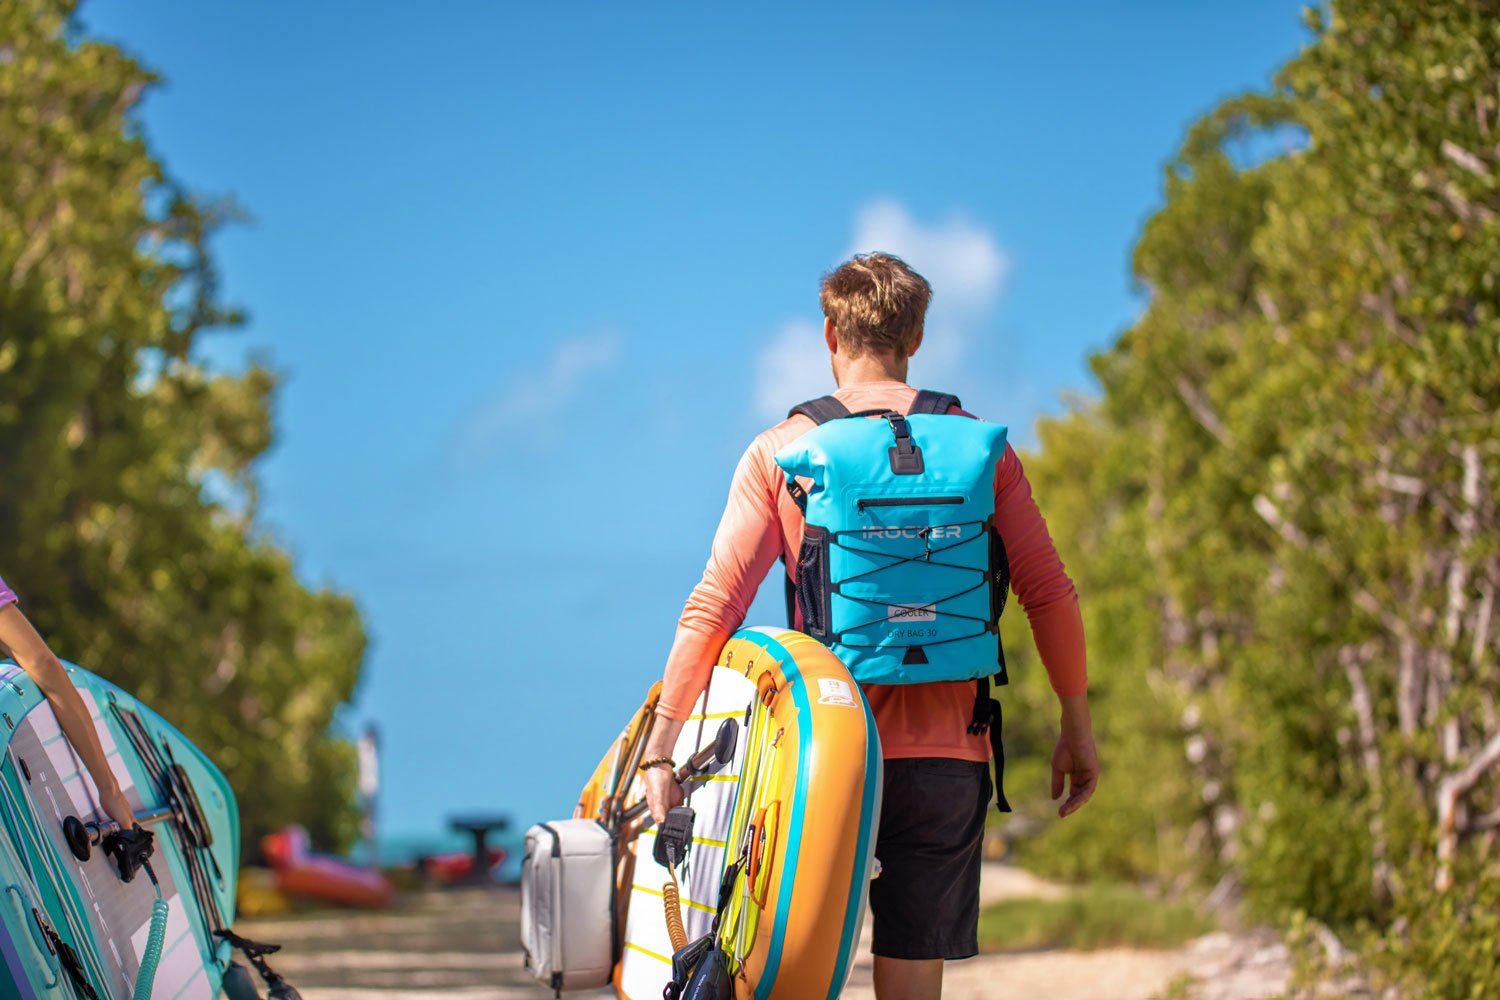 The Essentials to Pack for a SUP Adventure